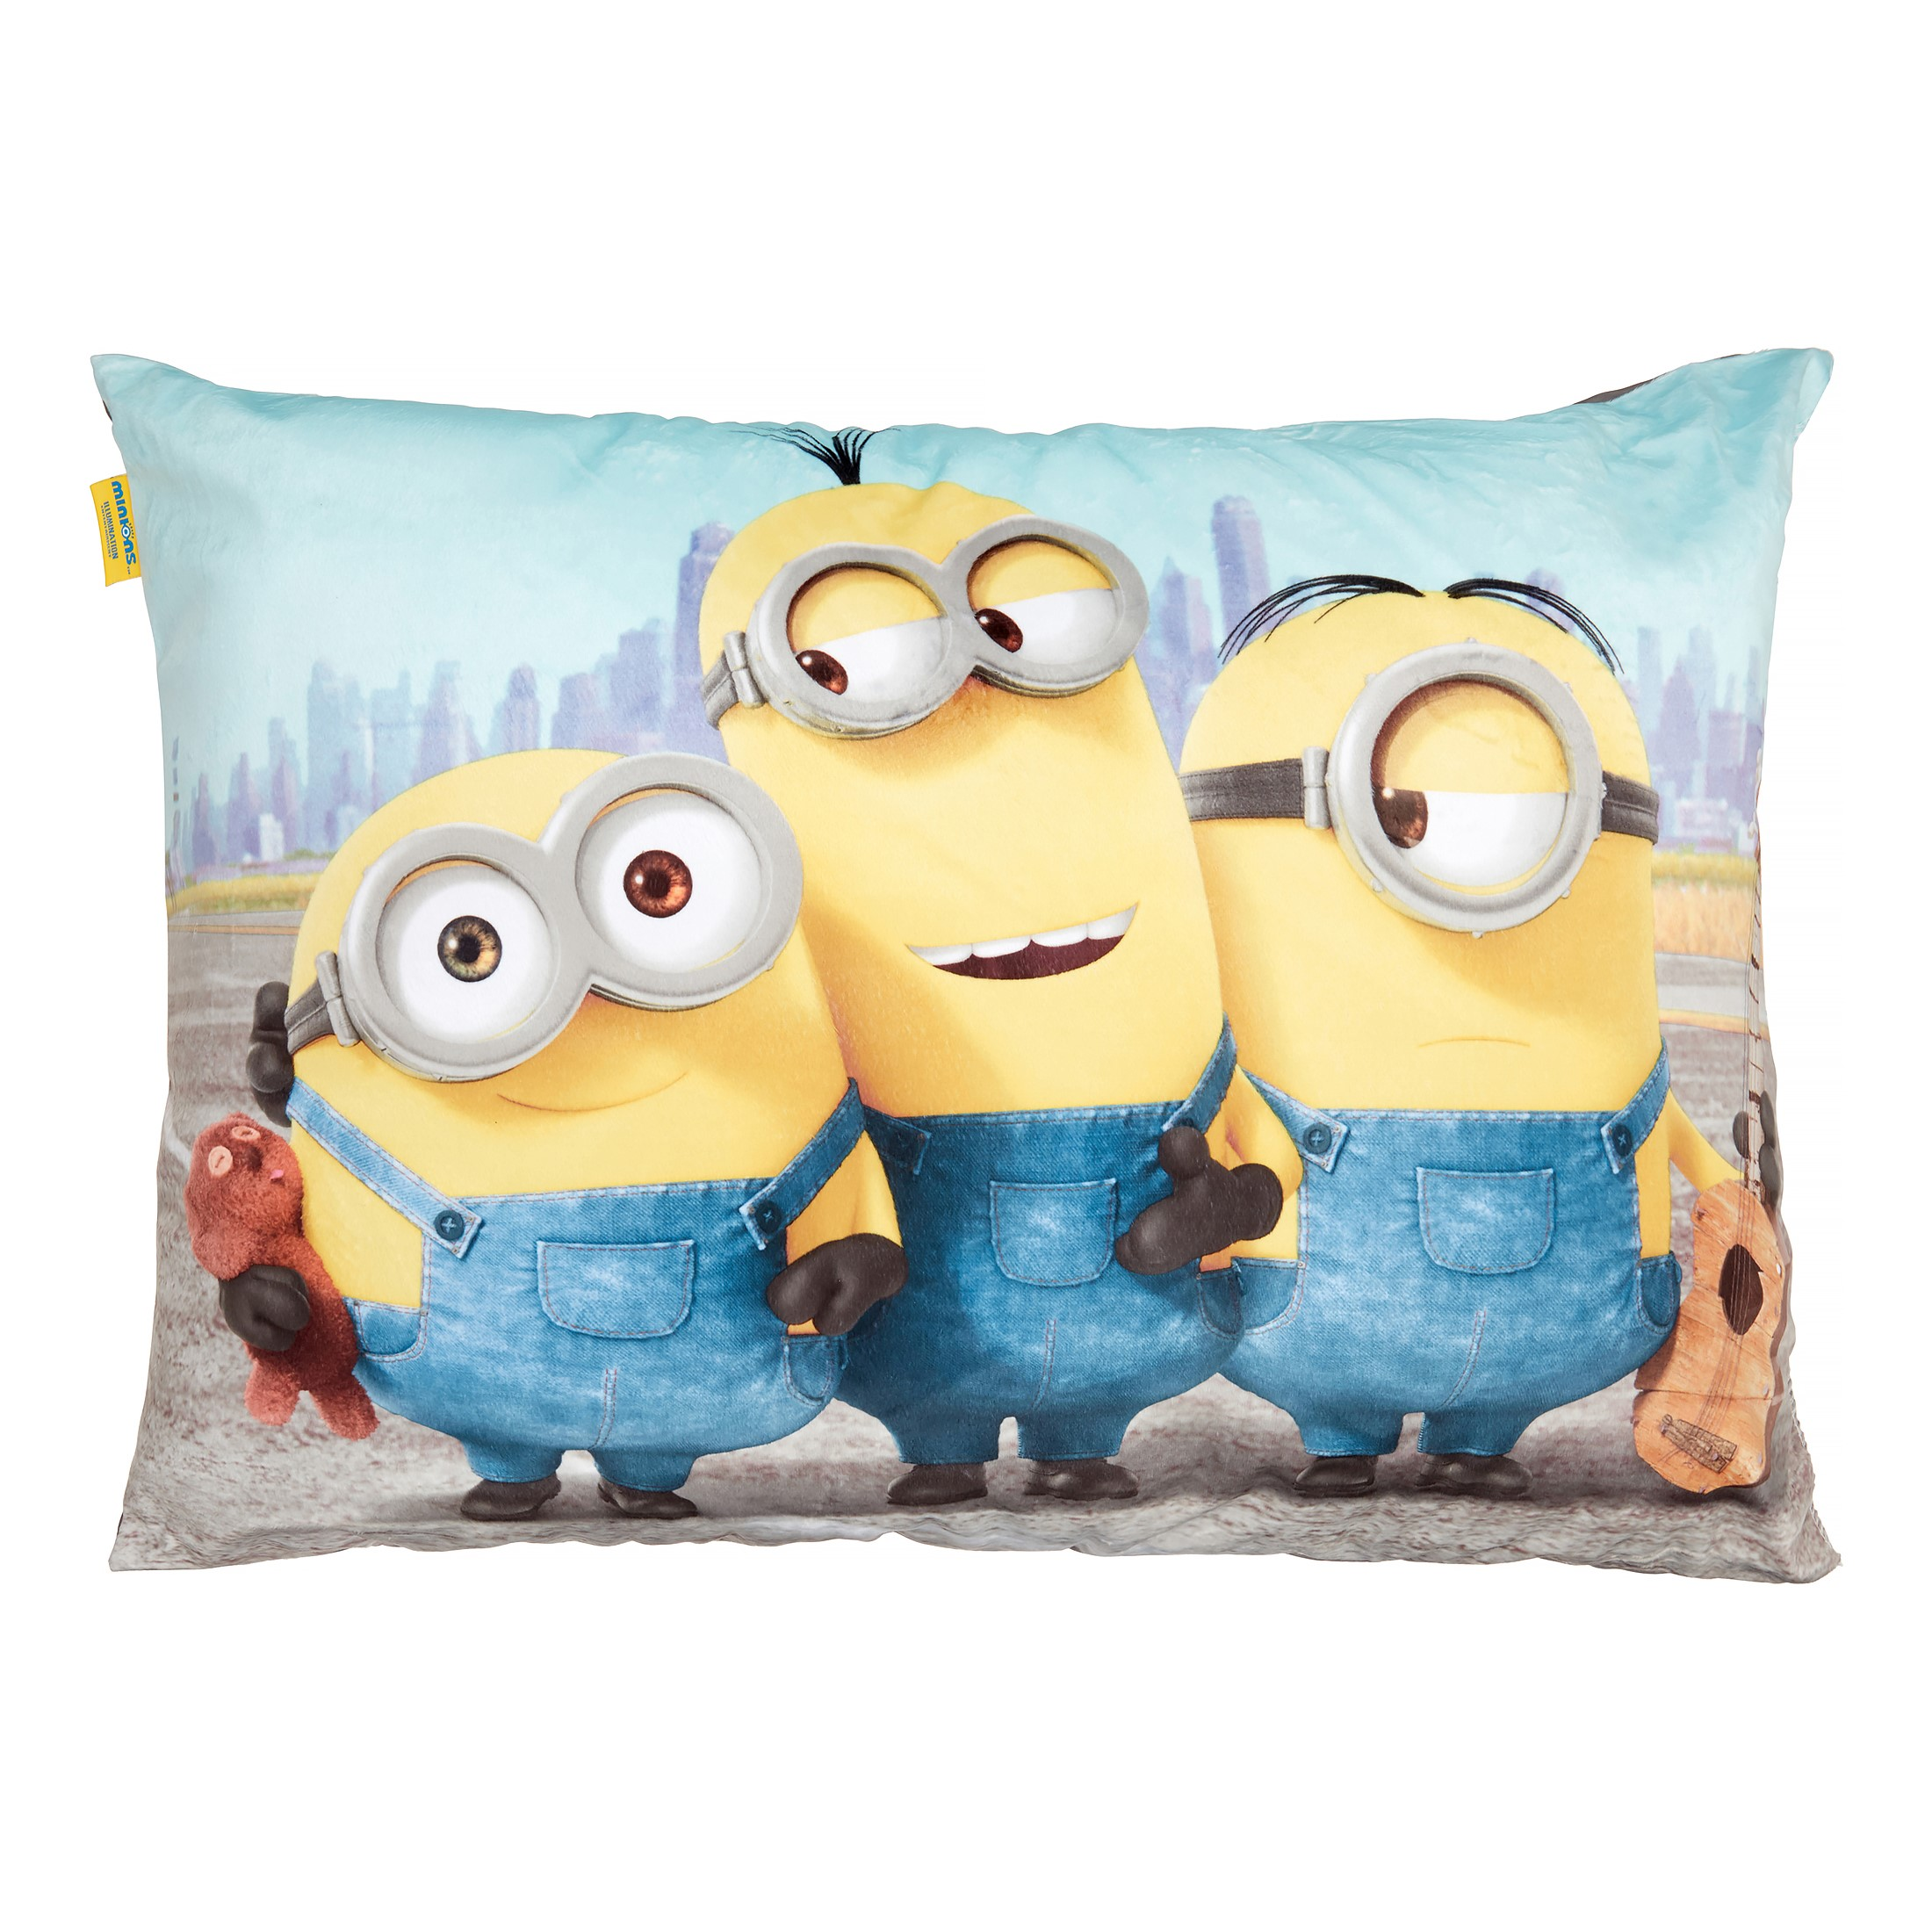 DESPICABLE ME MINIONS BLUE CUSHION PILLOW KID CHILDS BOYS GIRLS BEDROOM GIFT